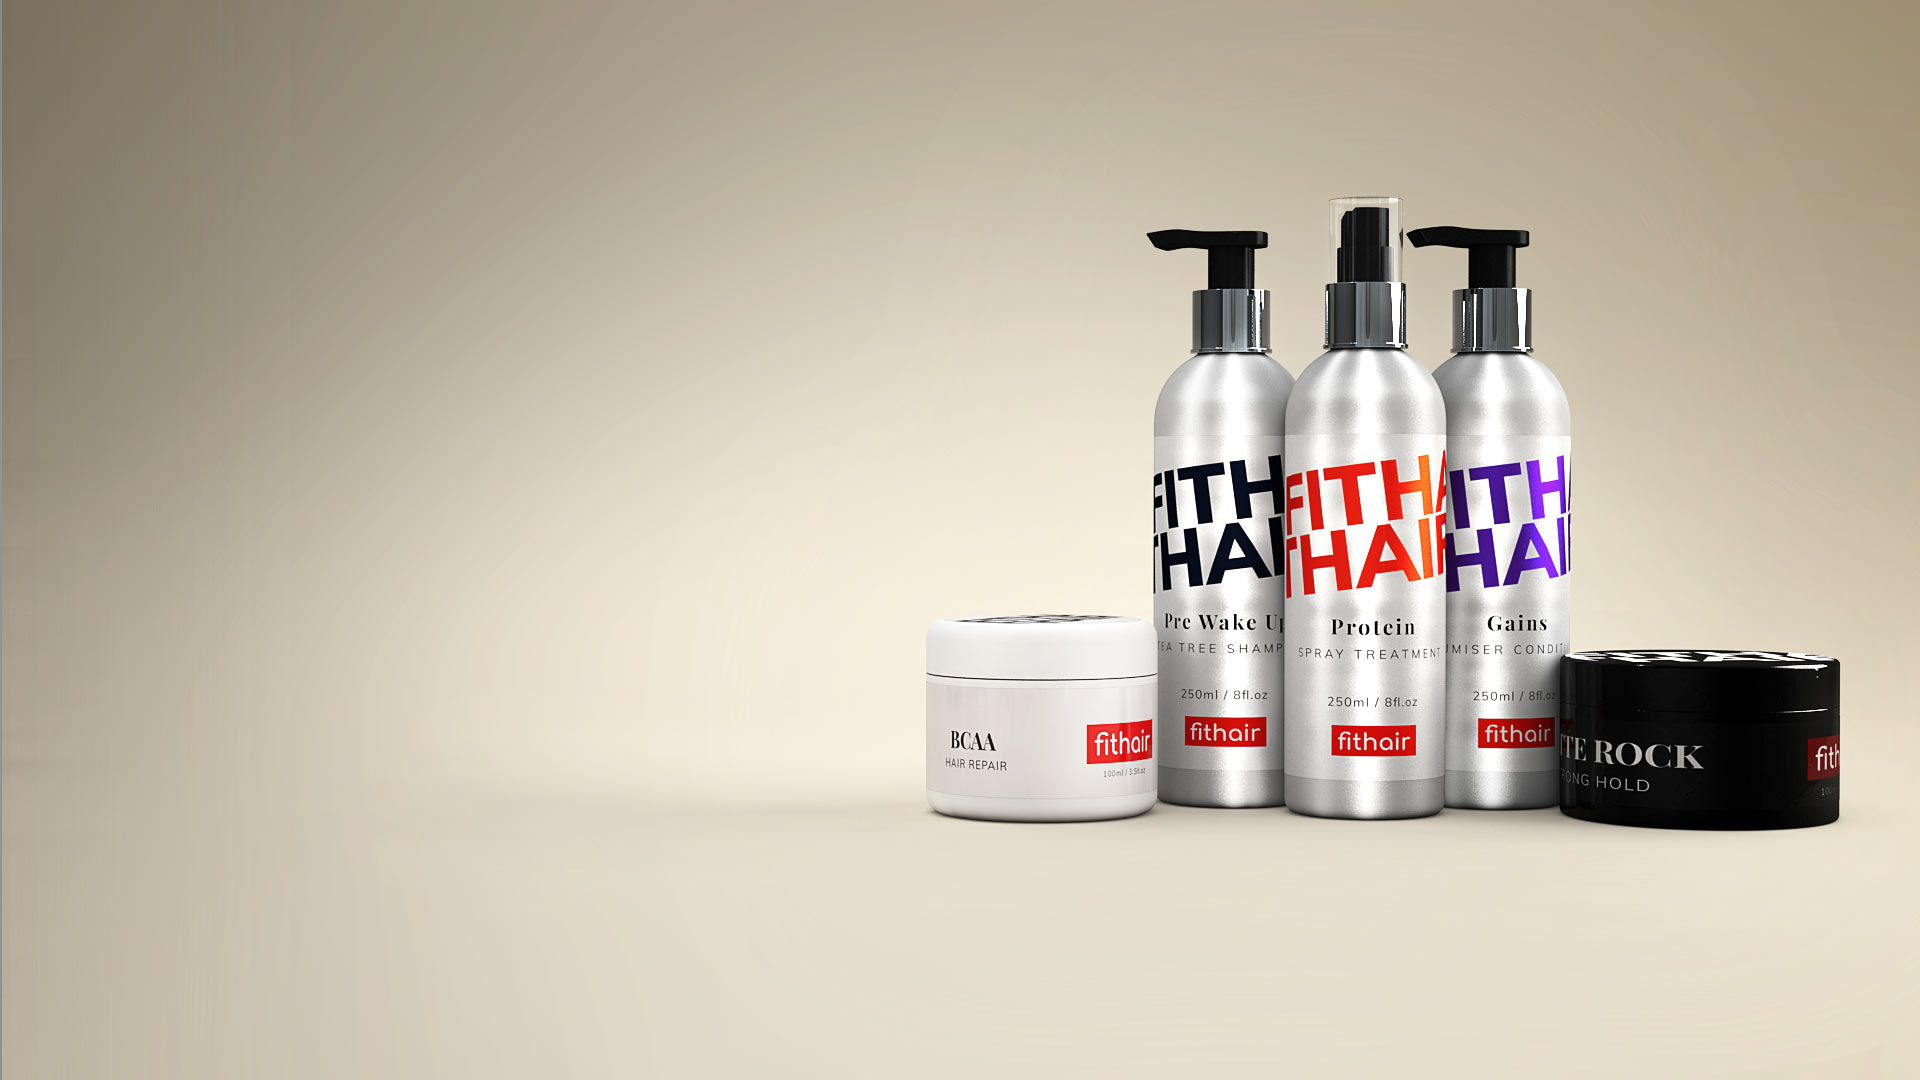 Fithair Global - Fitness Haircare products